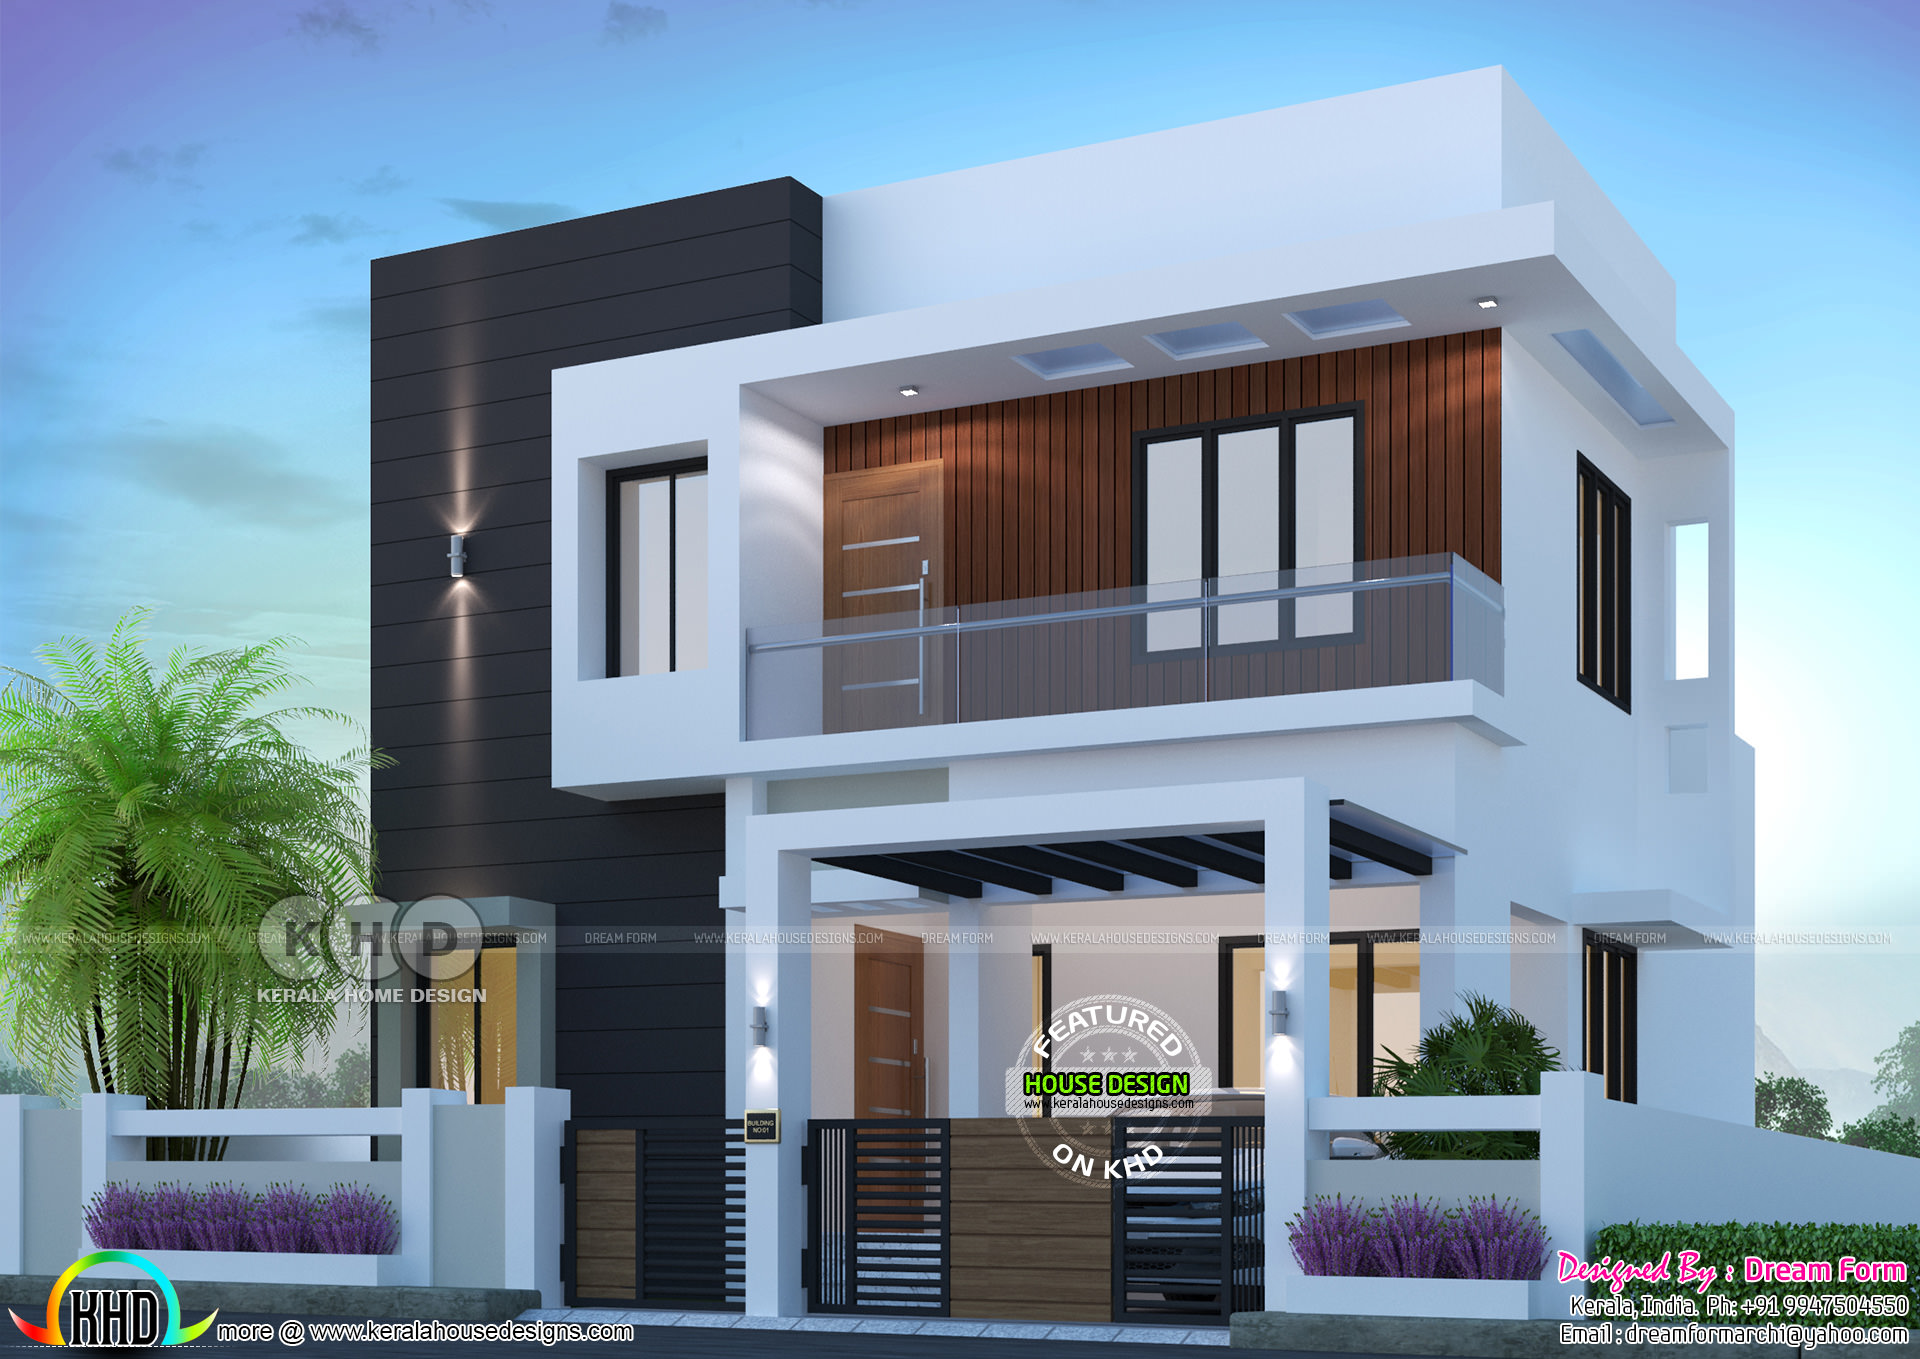 1500 sq-ft 3 bedroom modern home plan | Kerala home design ...